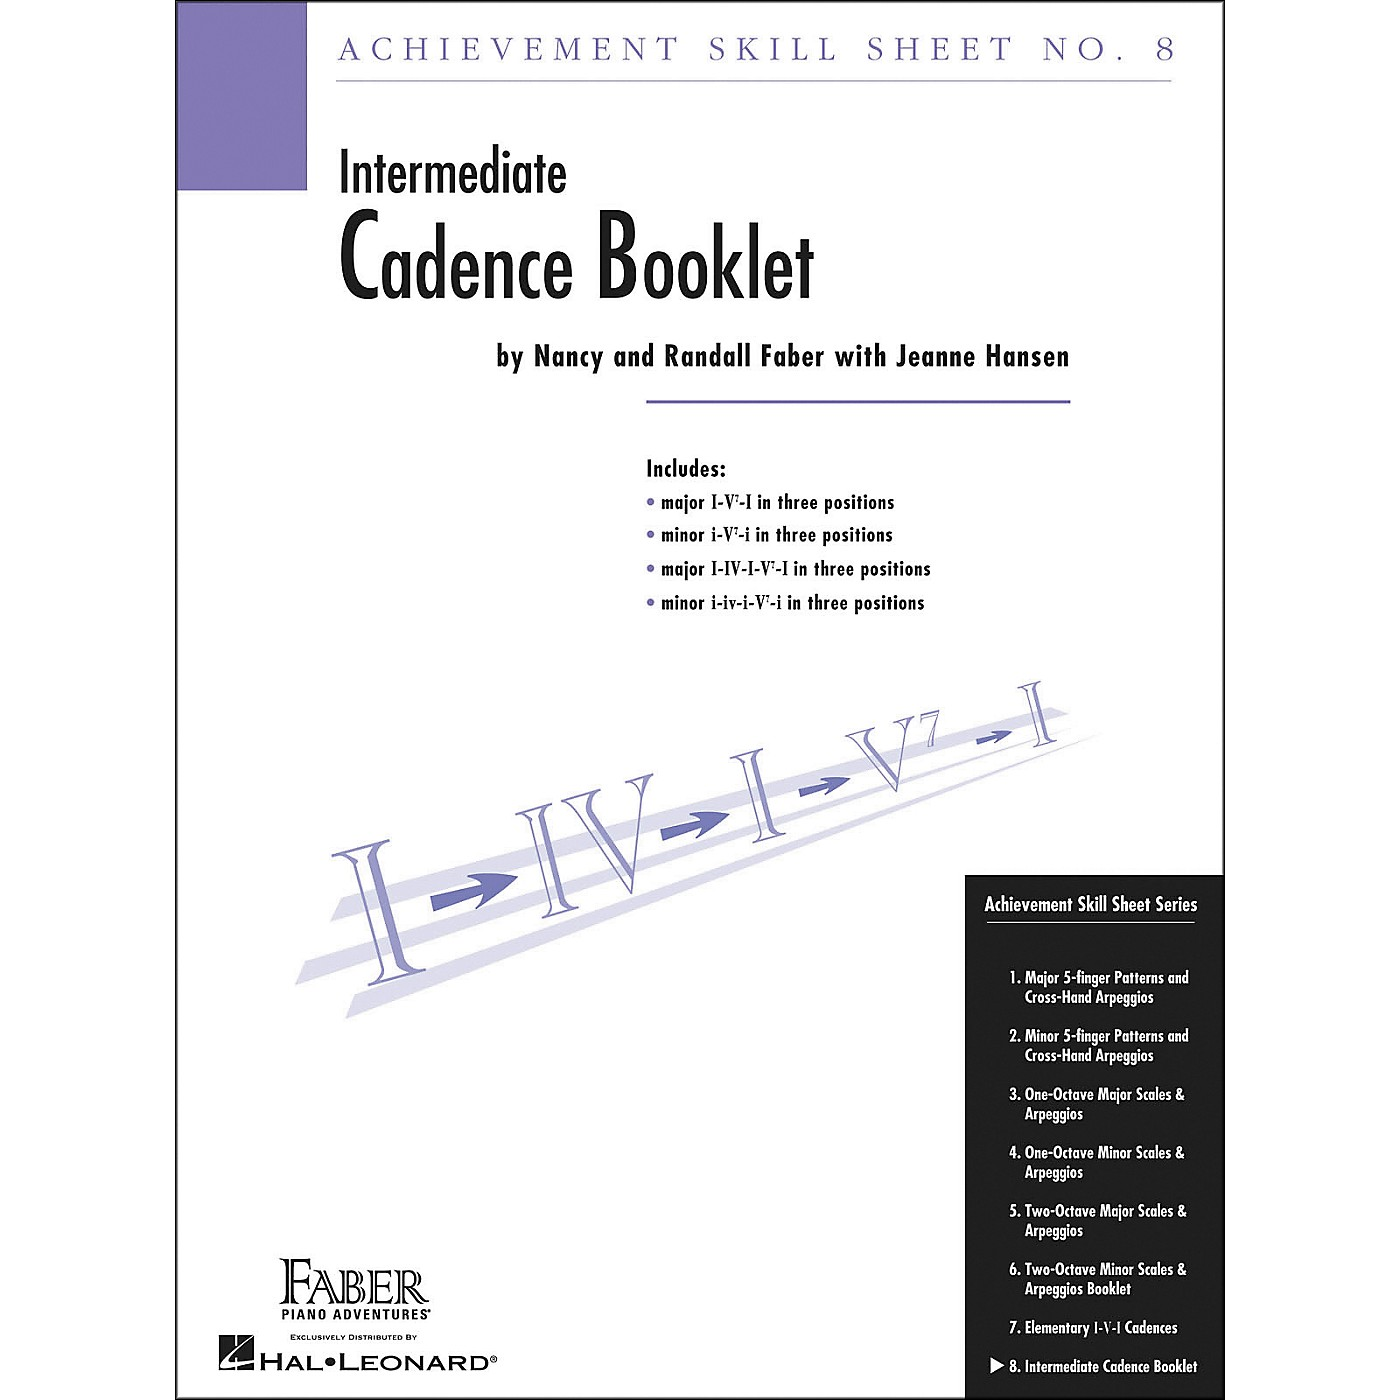 Faber Piano Adventures Achievement Skill Sheet No.8: Cadence Booklet - Faber Piano thumbnail